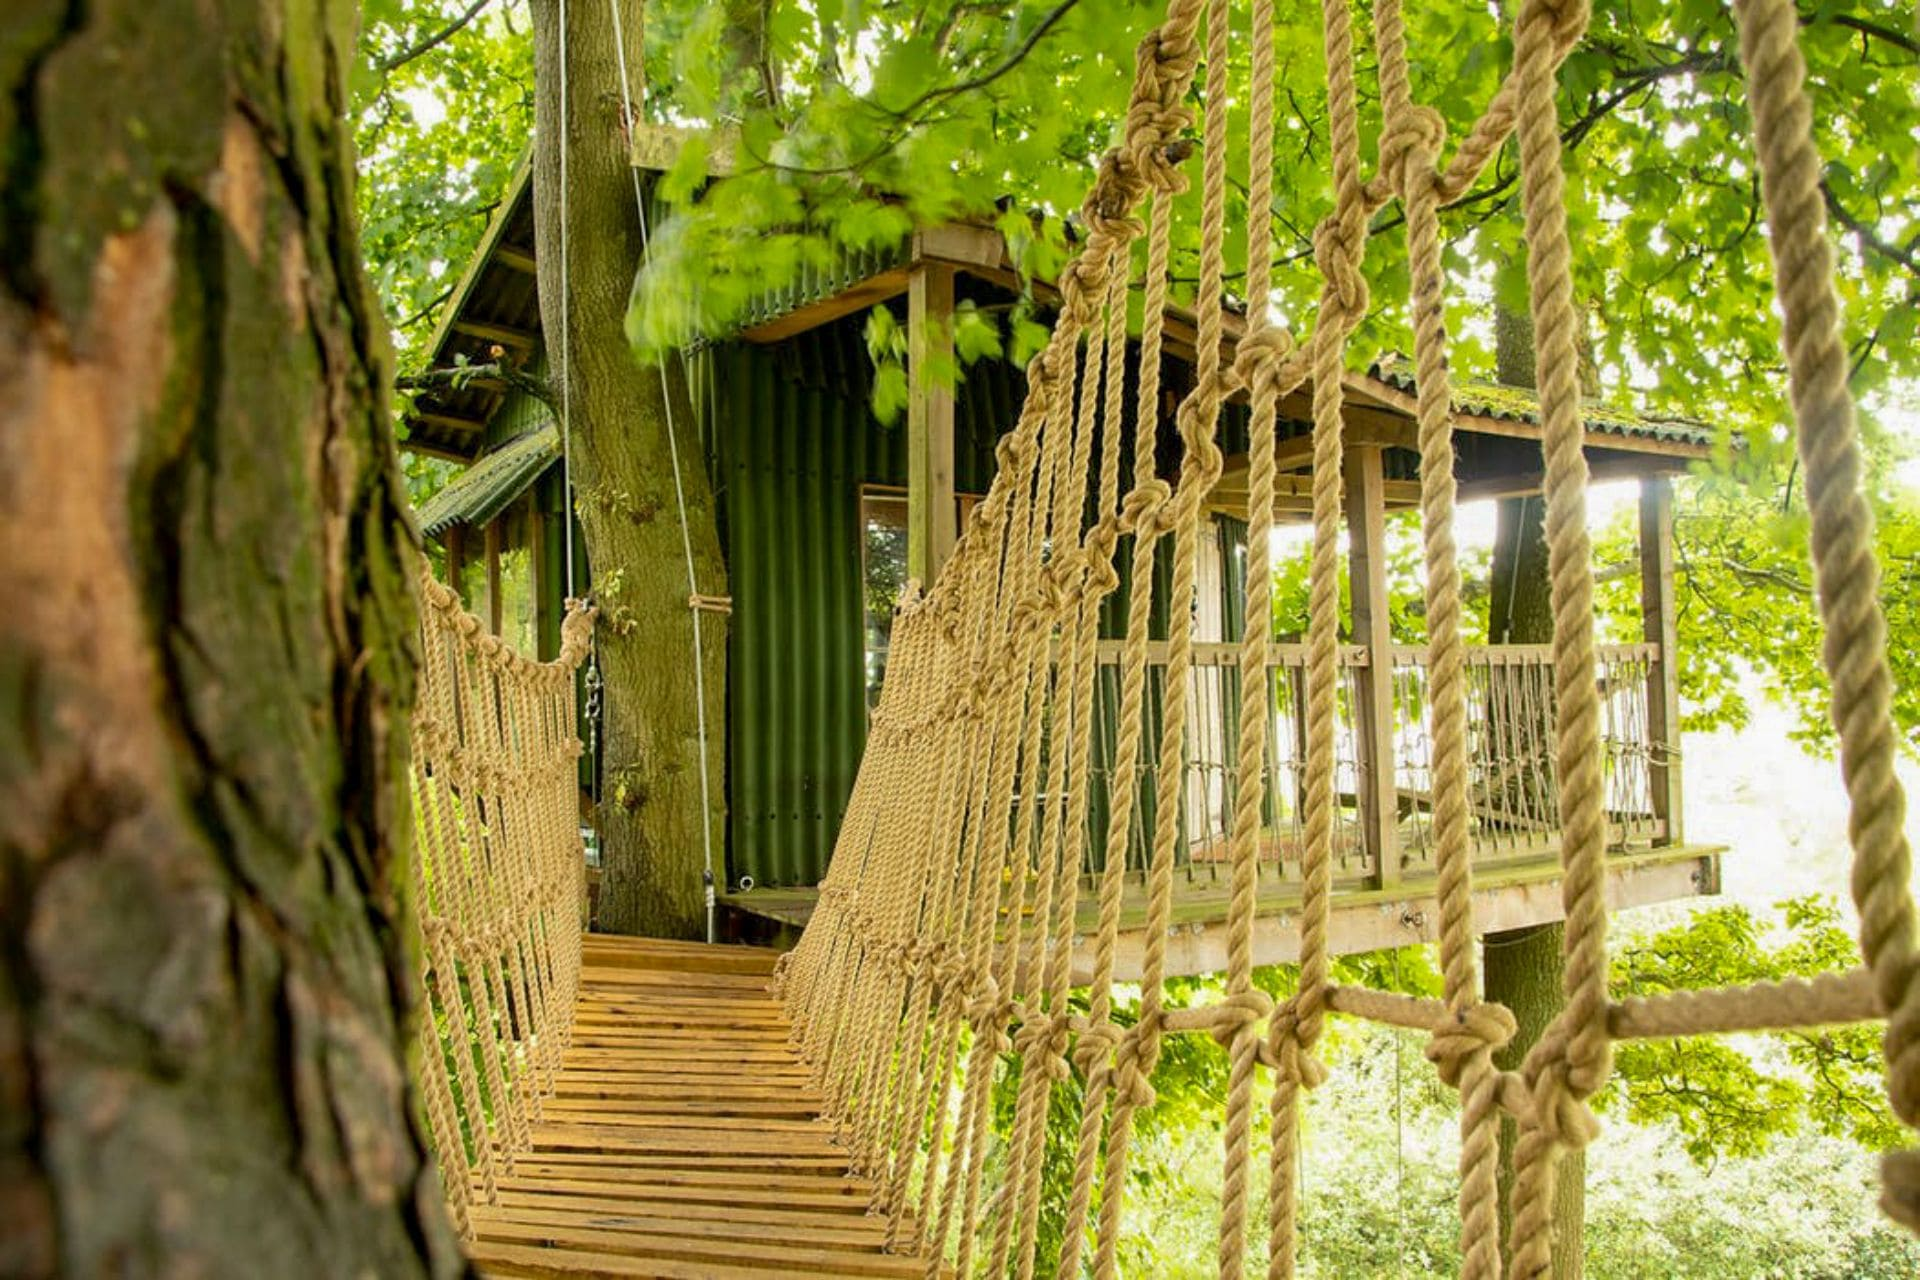 rope-bridge-amongst-trees-in-wood-leading-to-treehouse-copse-camp-denbighshire-wales